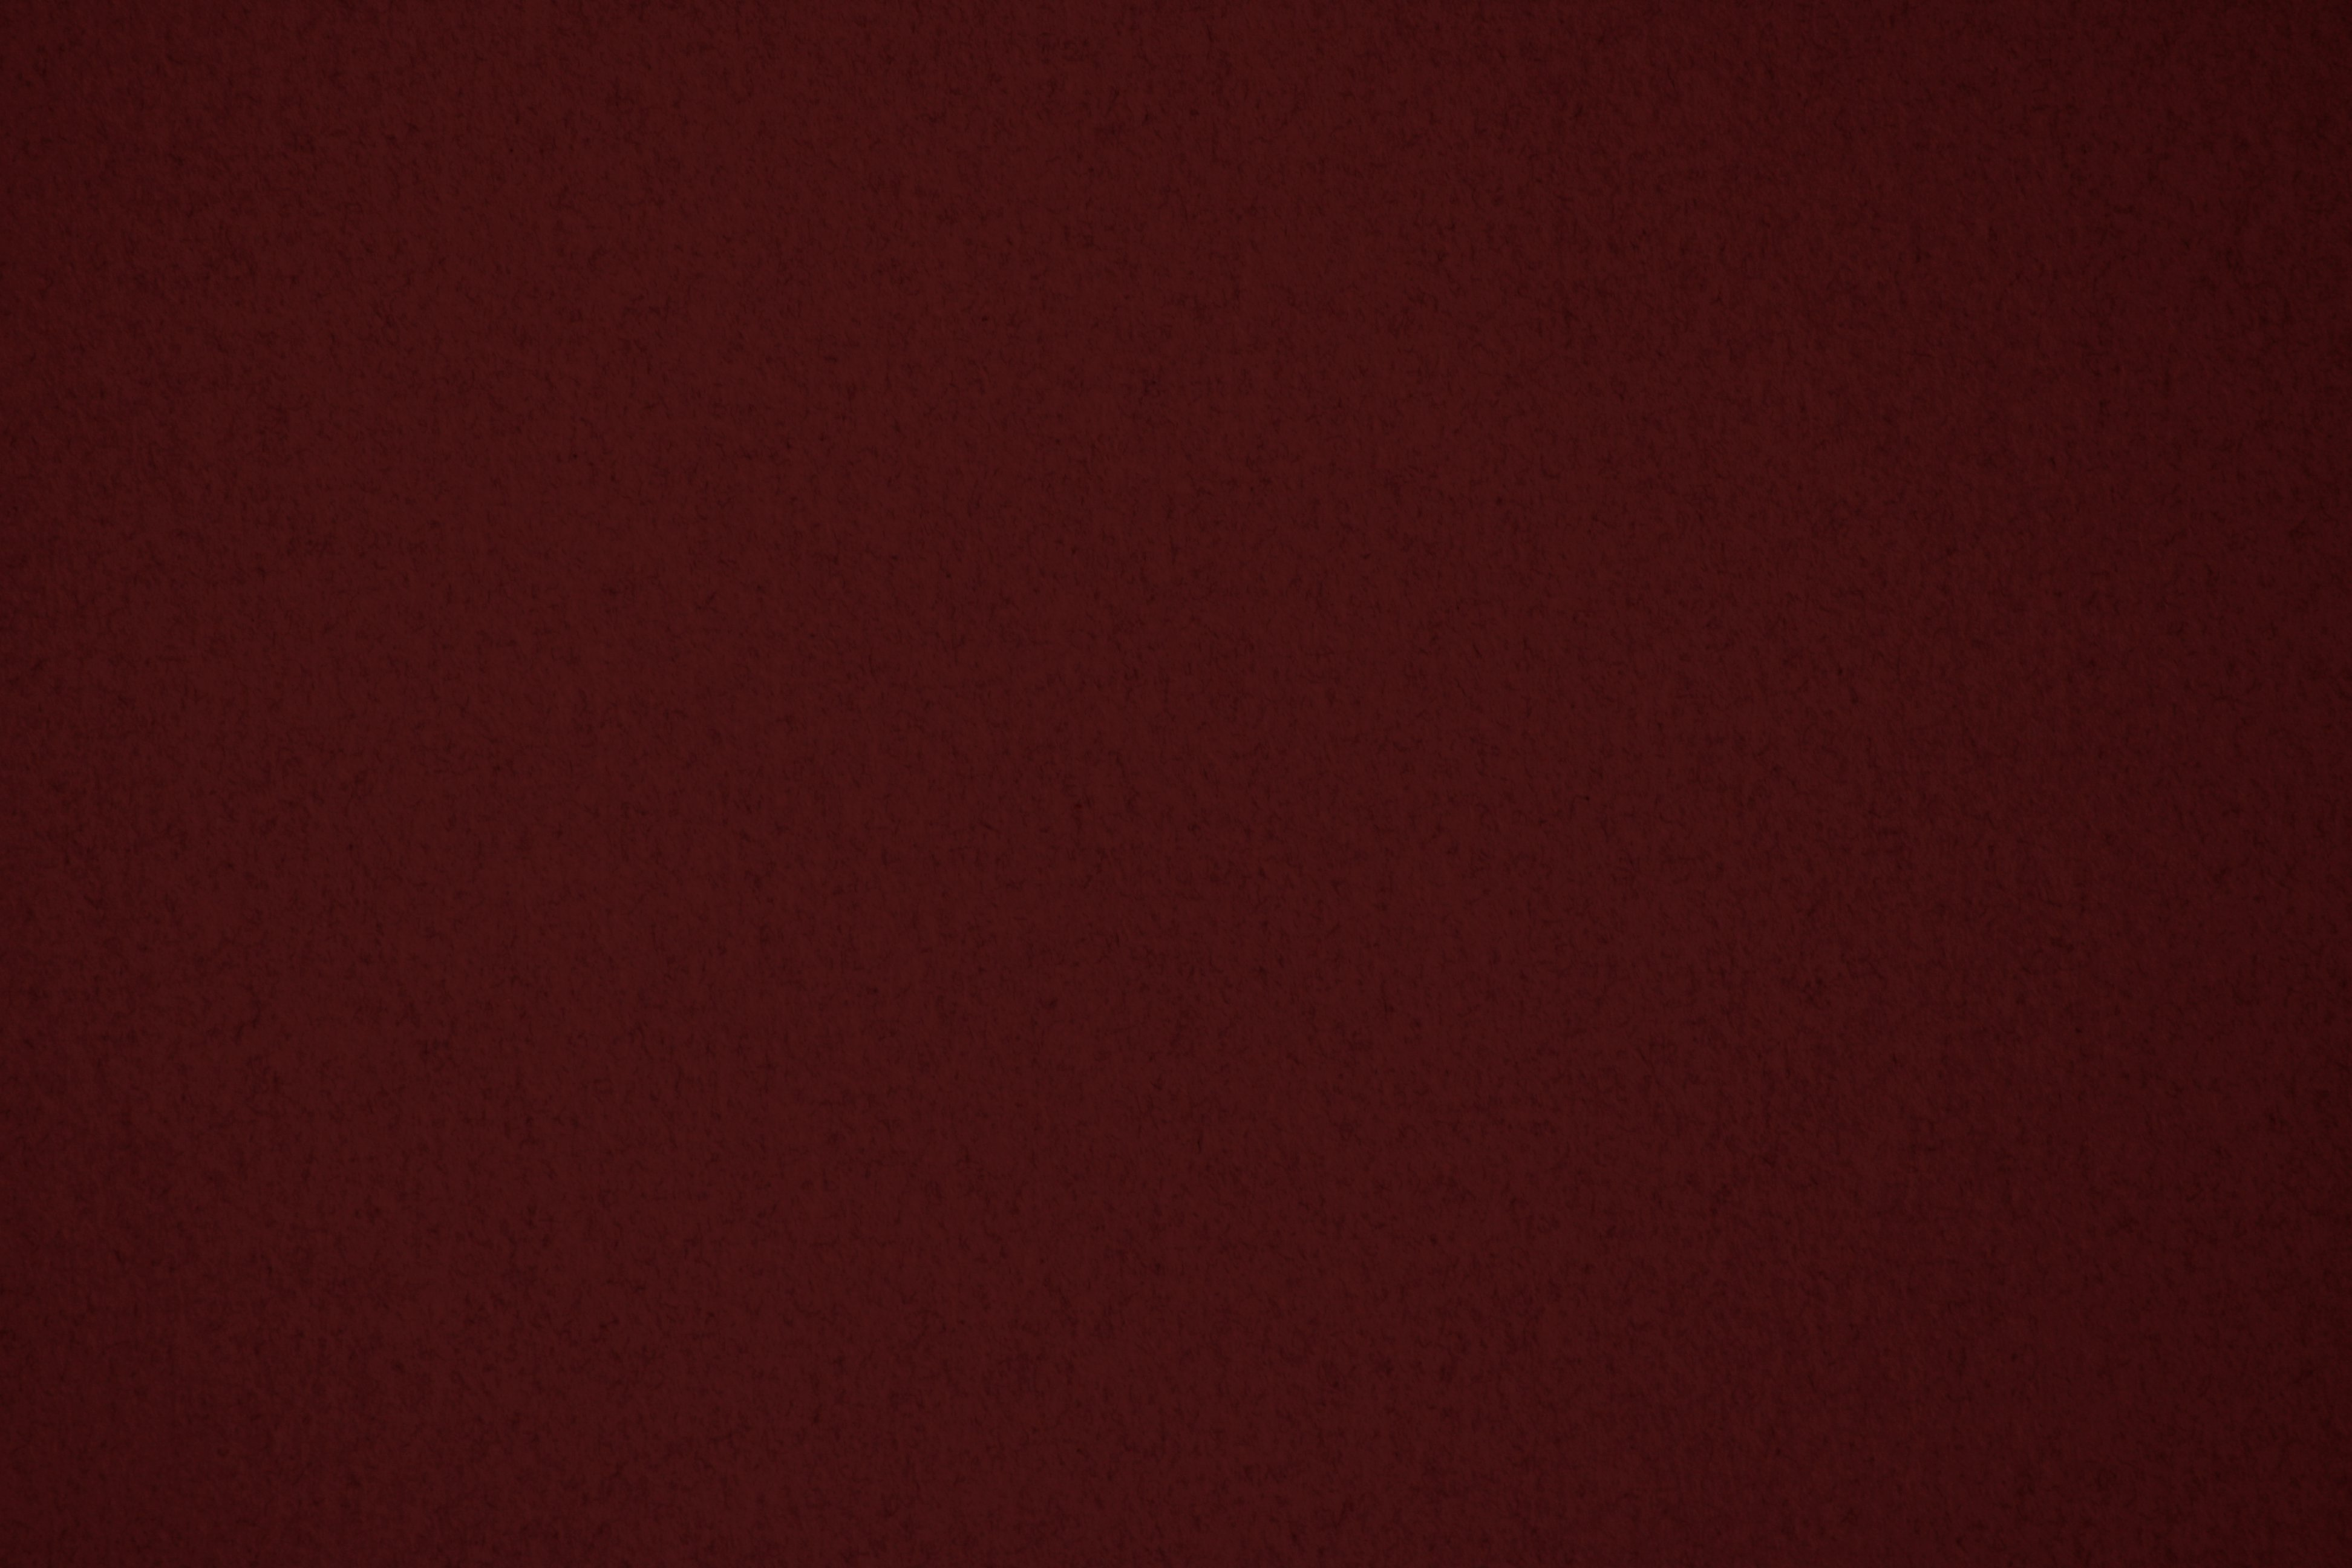 Free Download Maroon And Black Abstract Background Maroon